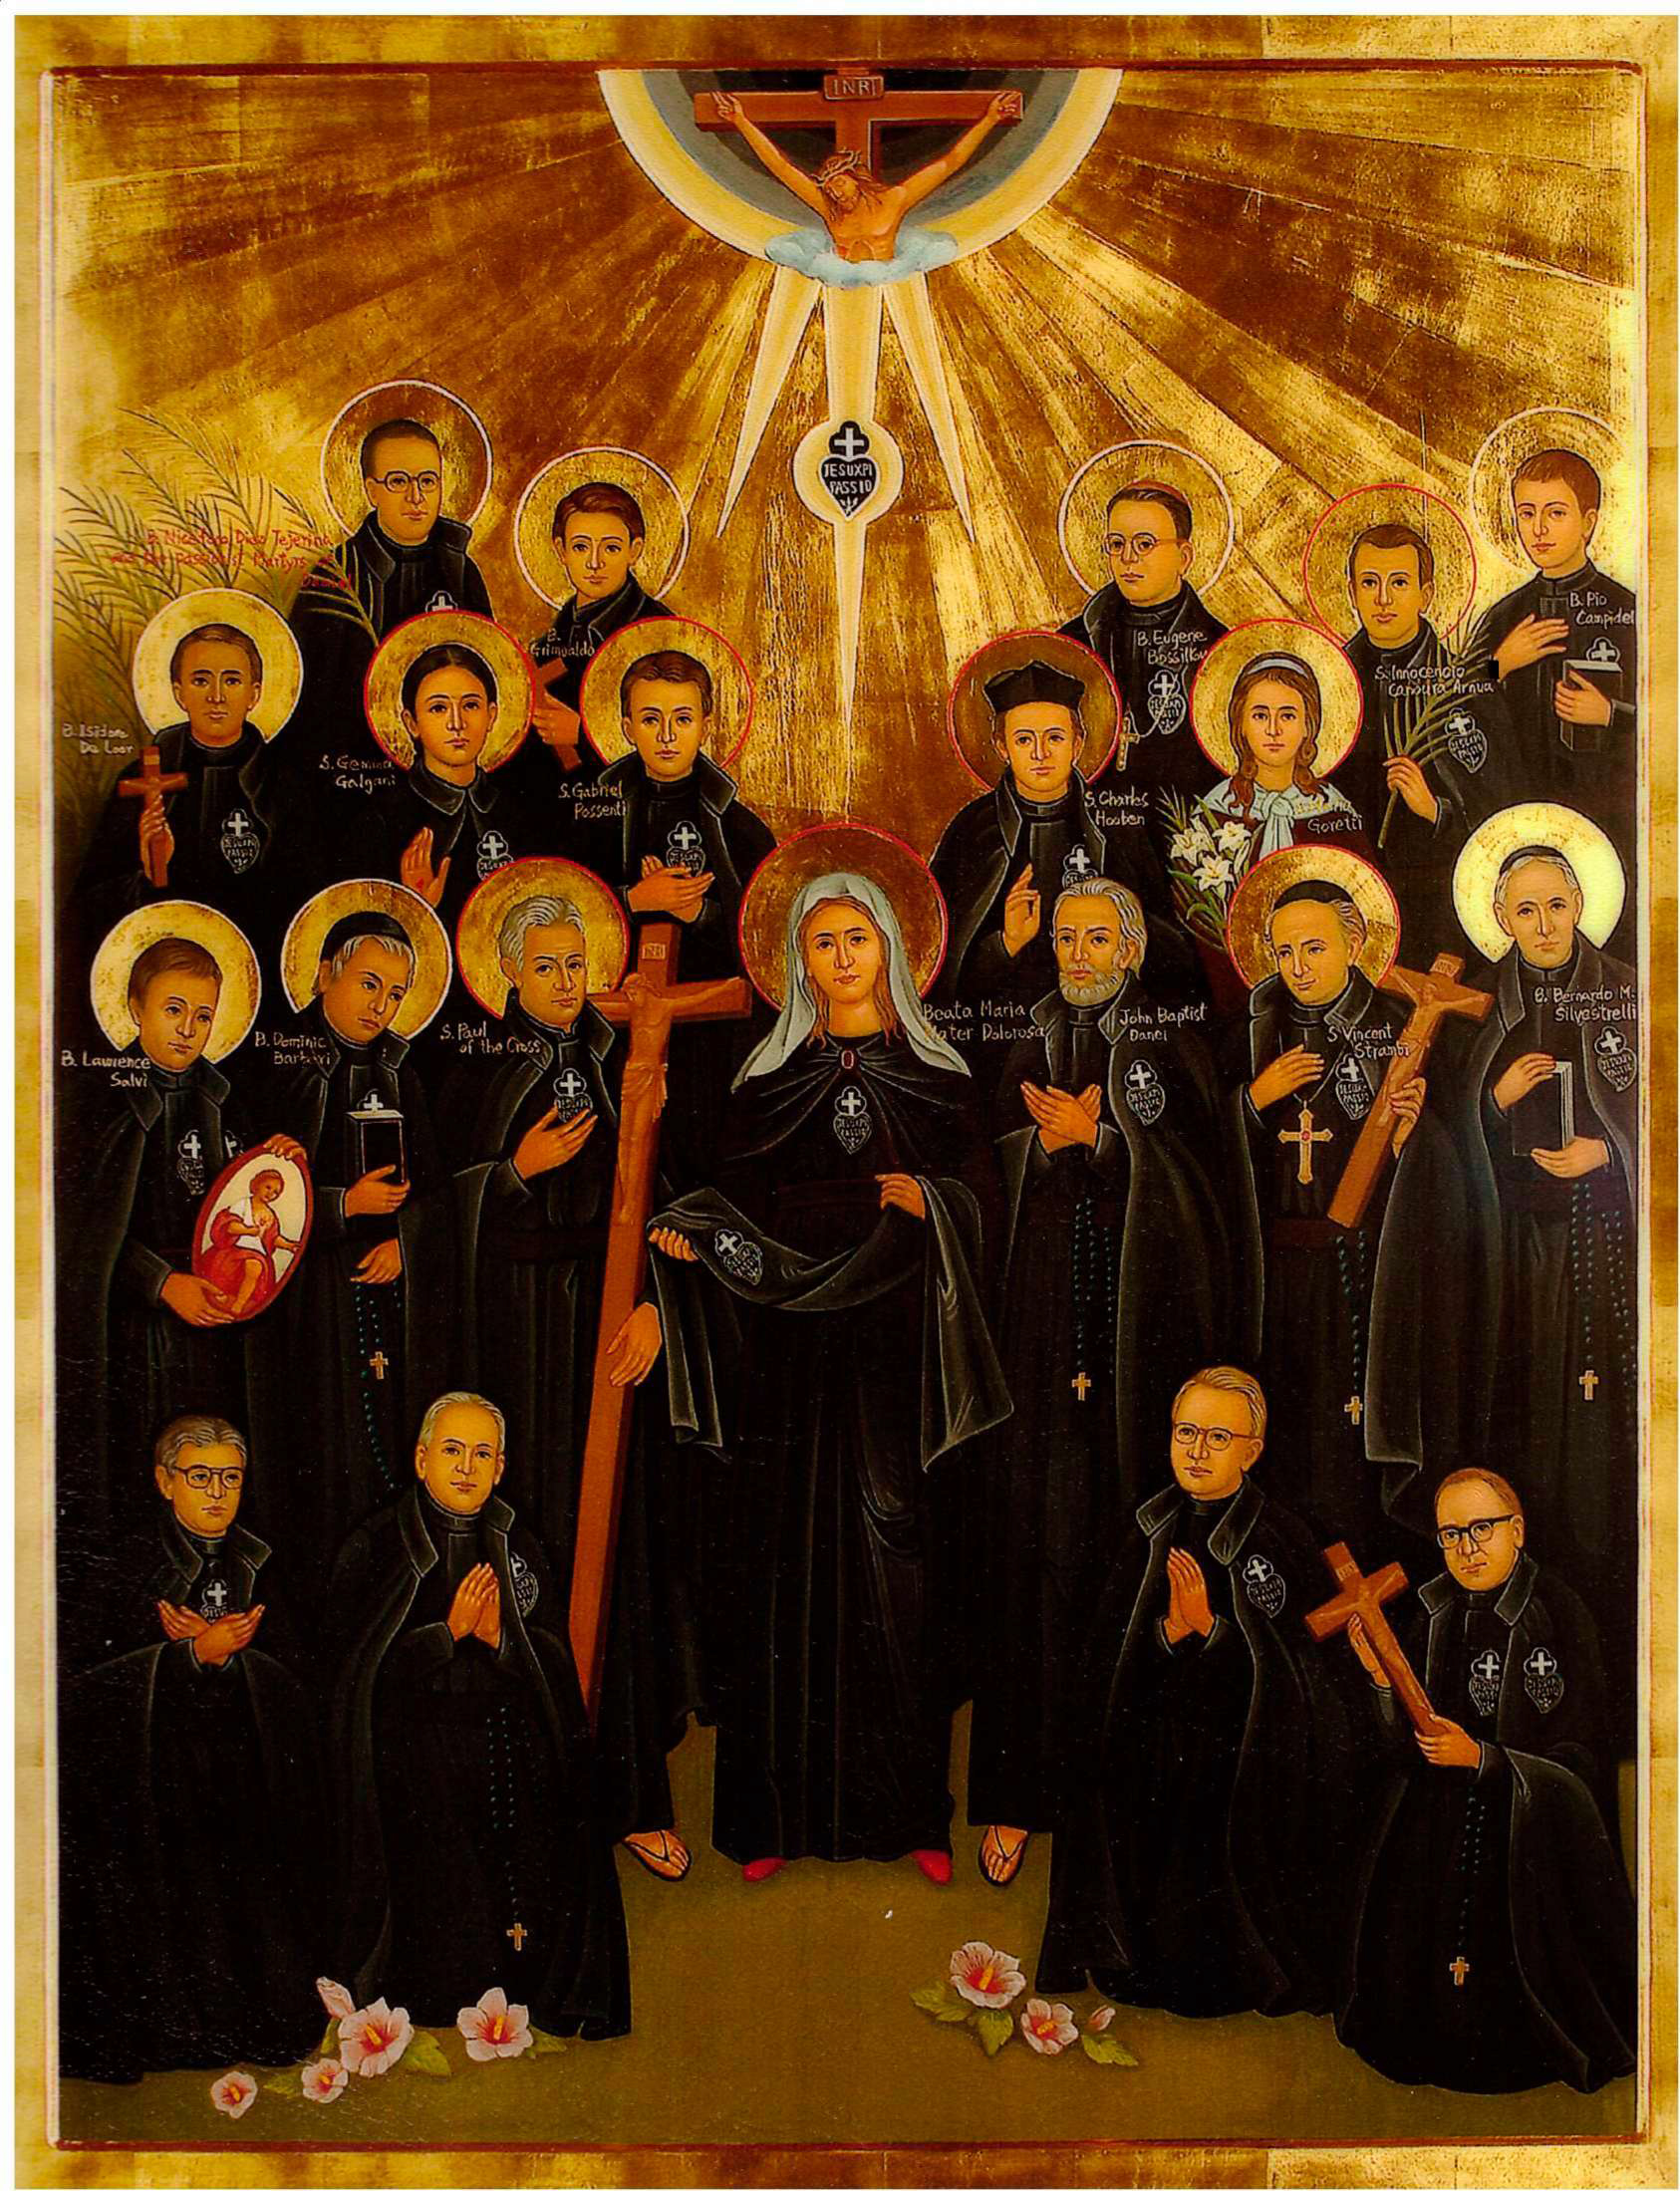 Icon of Our Lady of Sorrows, principal patroness of the Passionist Congregation, surrounded by many of our Passionist Saints and Blesseds. The priest standing to her right who does not have a halo is Fr. John Baptist Danei, brother and first companion of St. Paul of the Cross. The four priests kneeling in front are the founders of the Korean Passionist community.